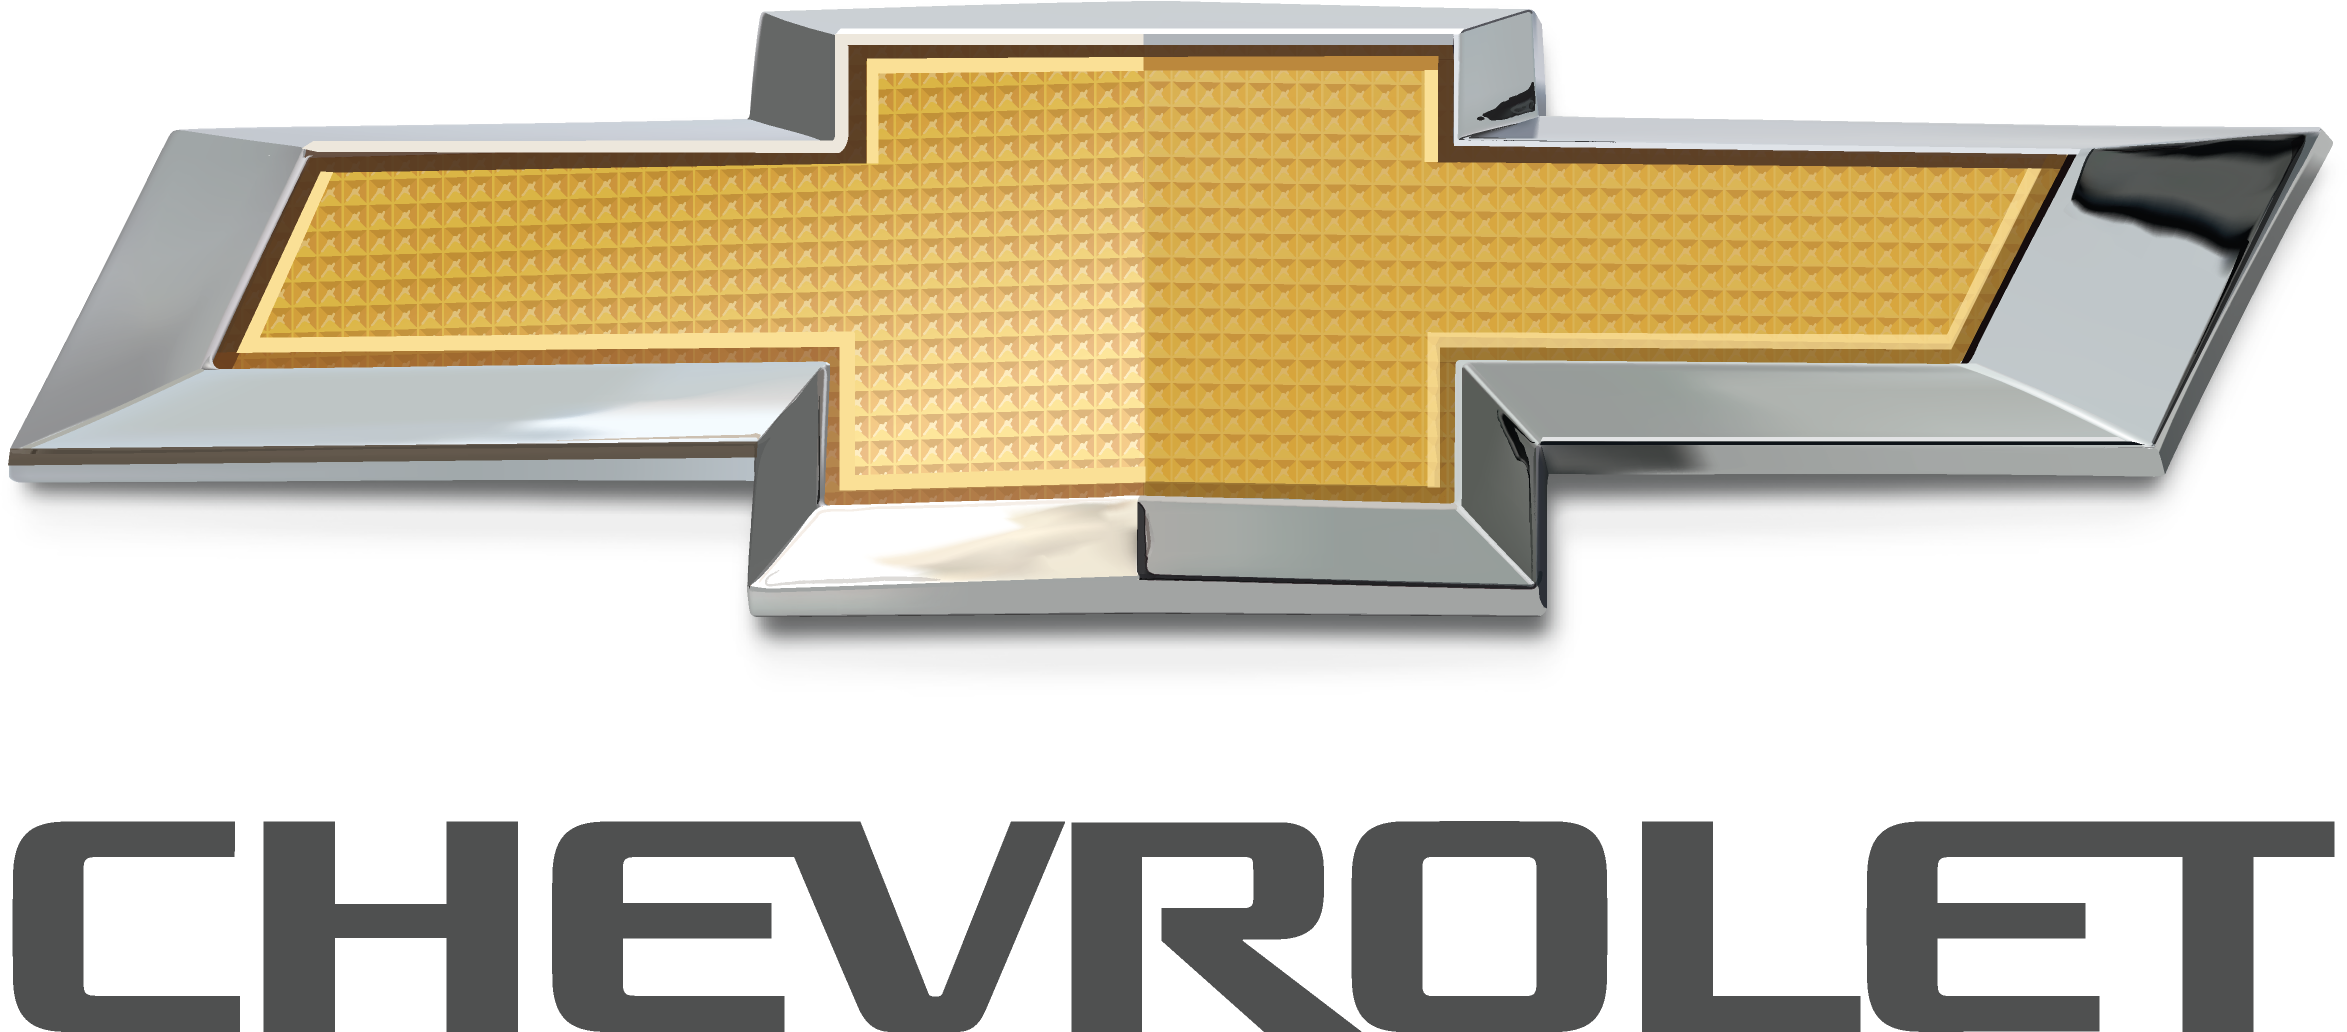 Chevrolet logo 2013 2560x1440 copy